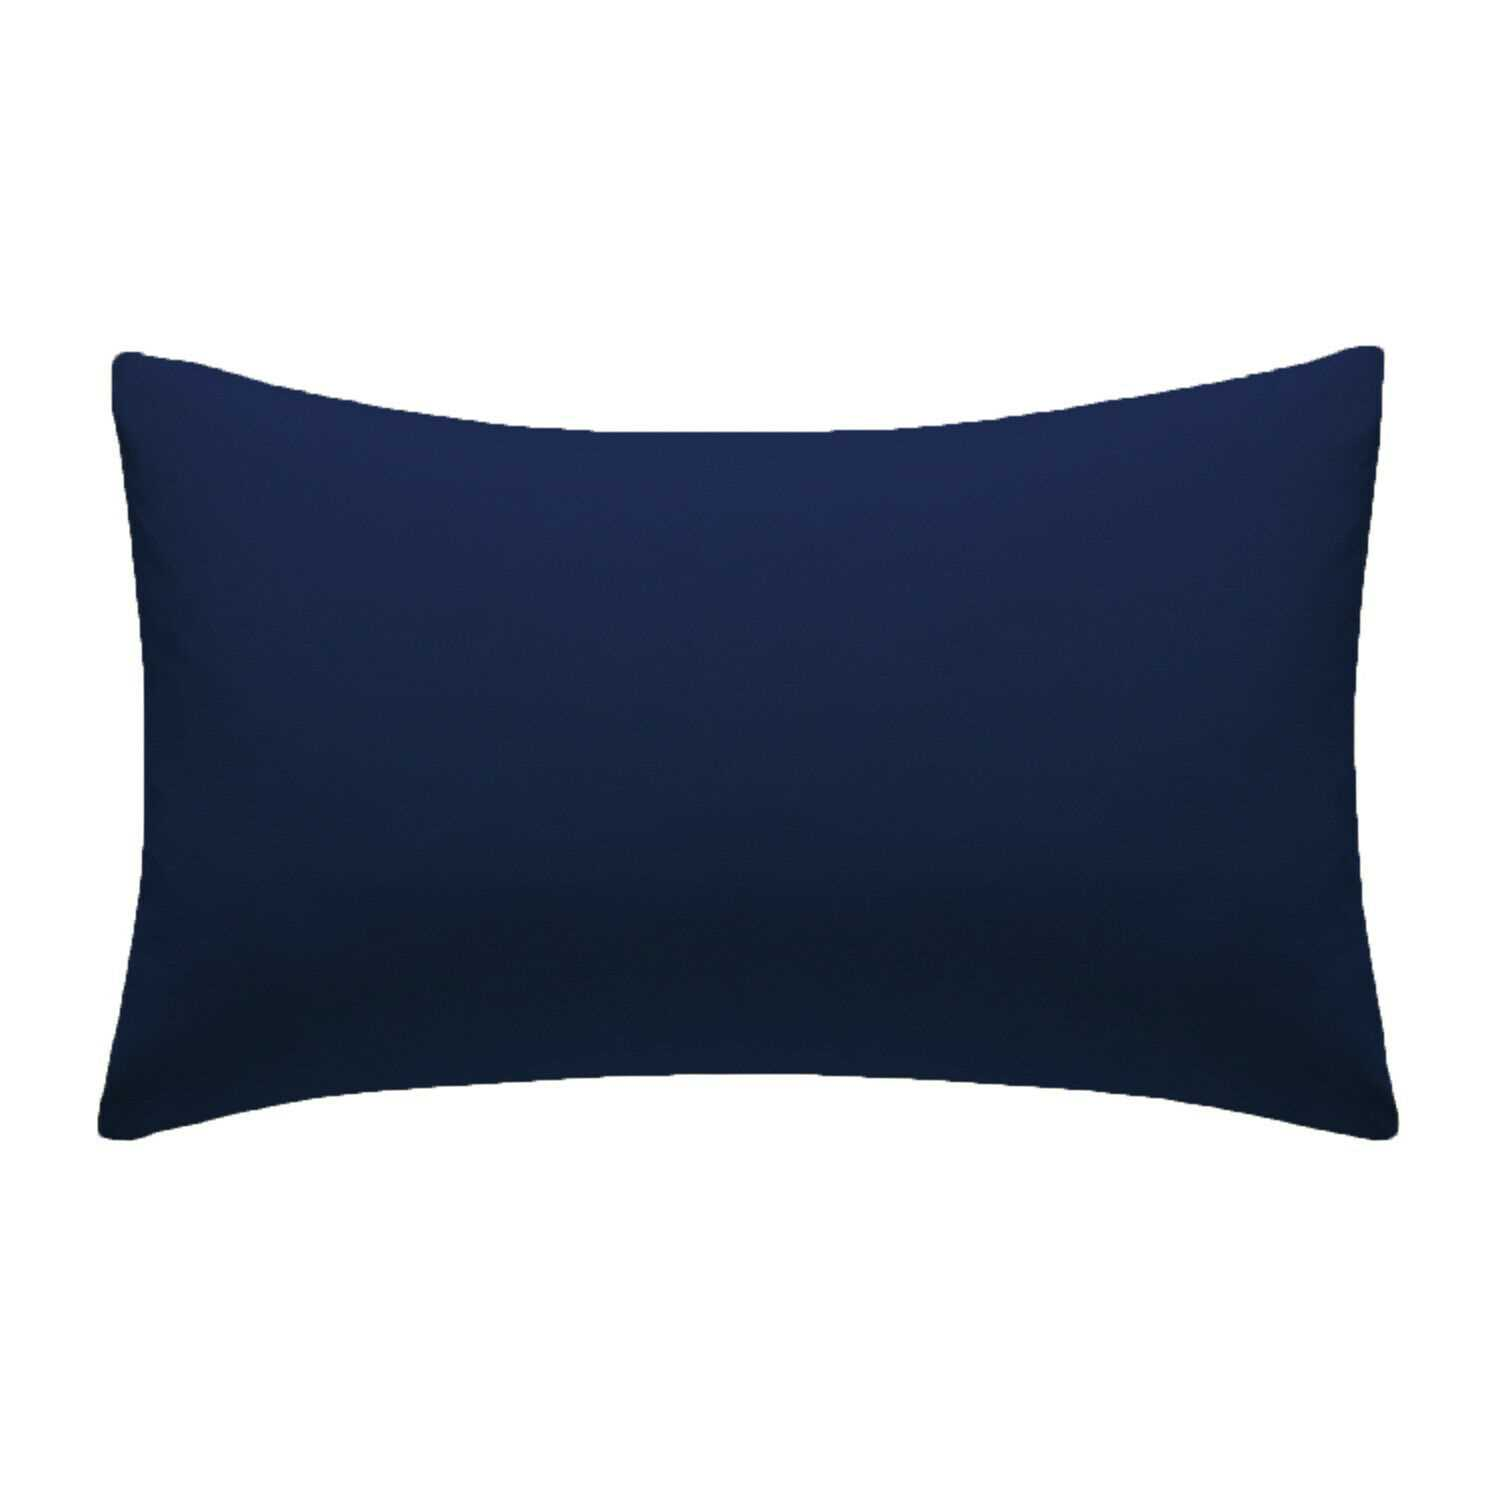 Navy Plain Pillow Cases Cotton Pair Housewife Case Cover 100% Luxury Pack Covers